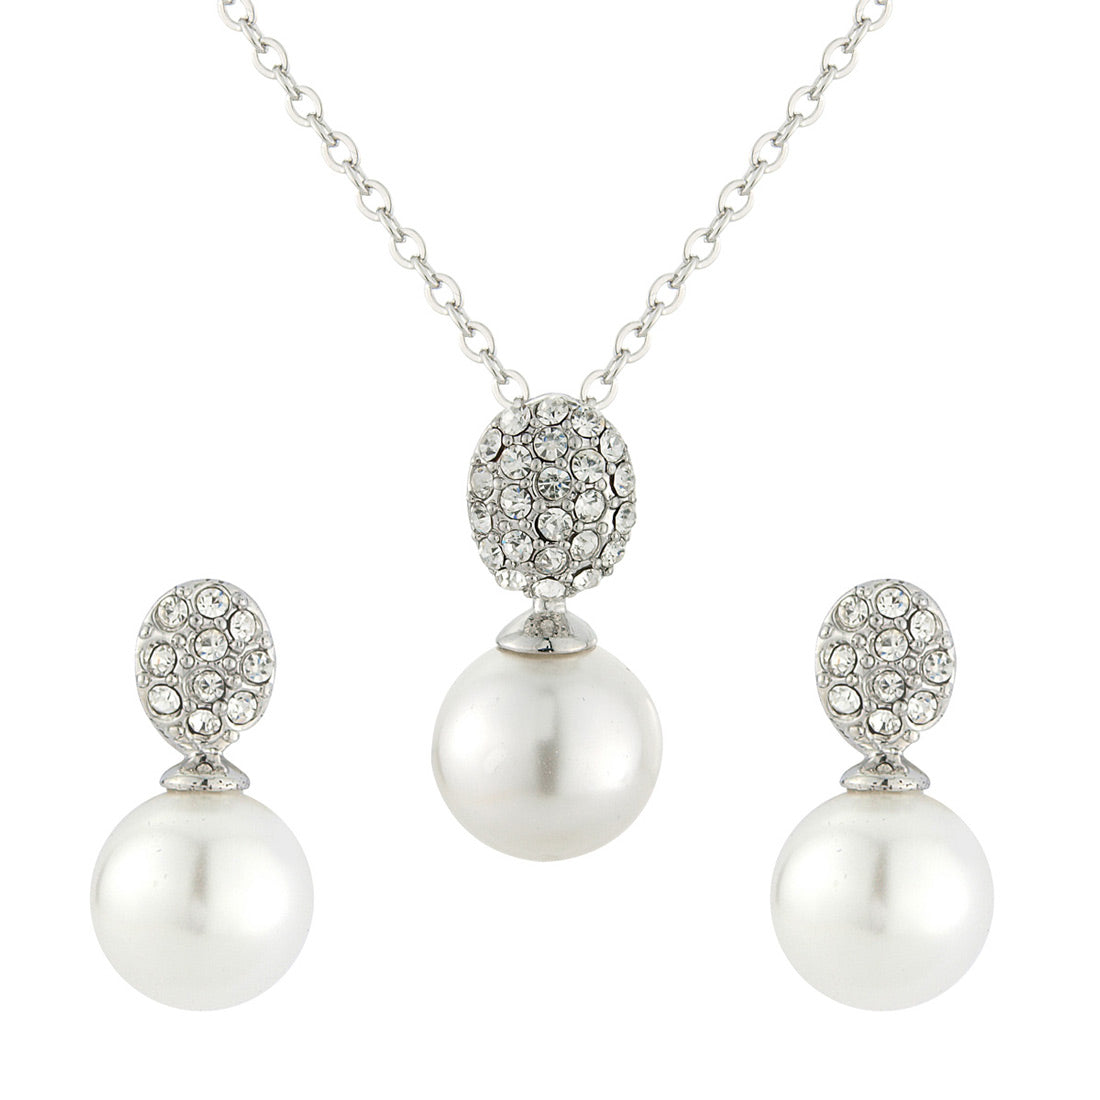 Timeless Elegance Pearl Bridal Jewellery Set featuring earrings and pendant